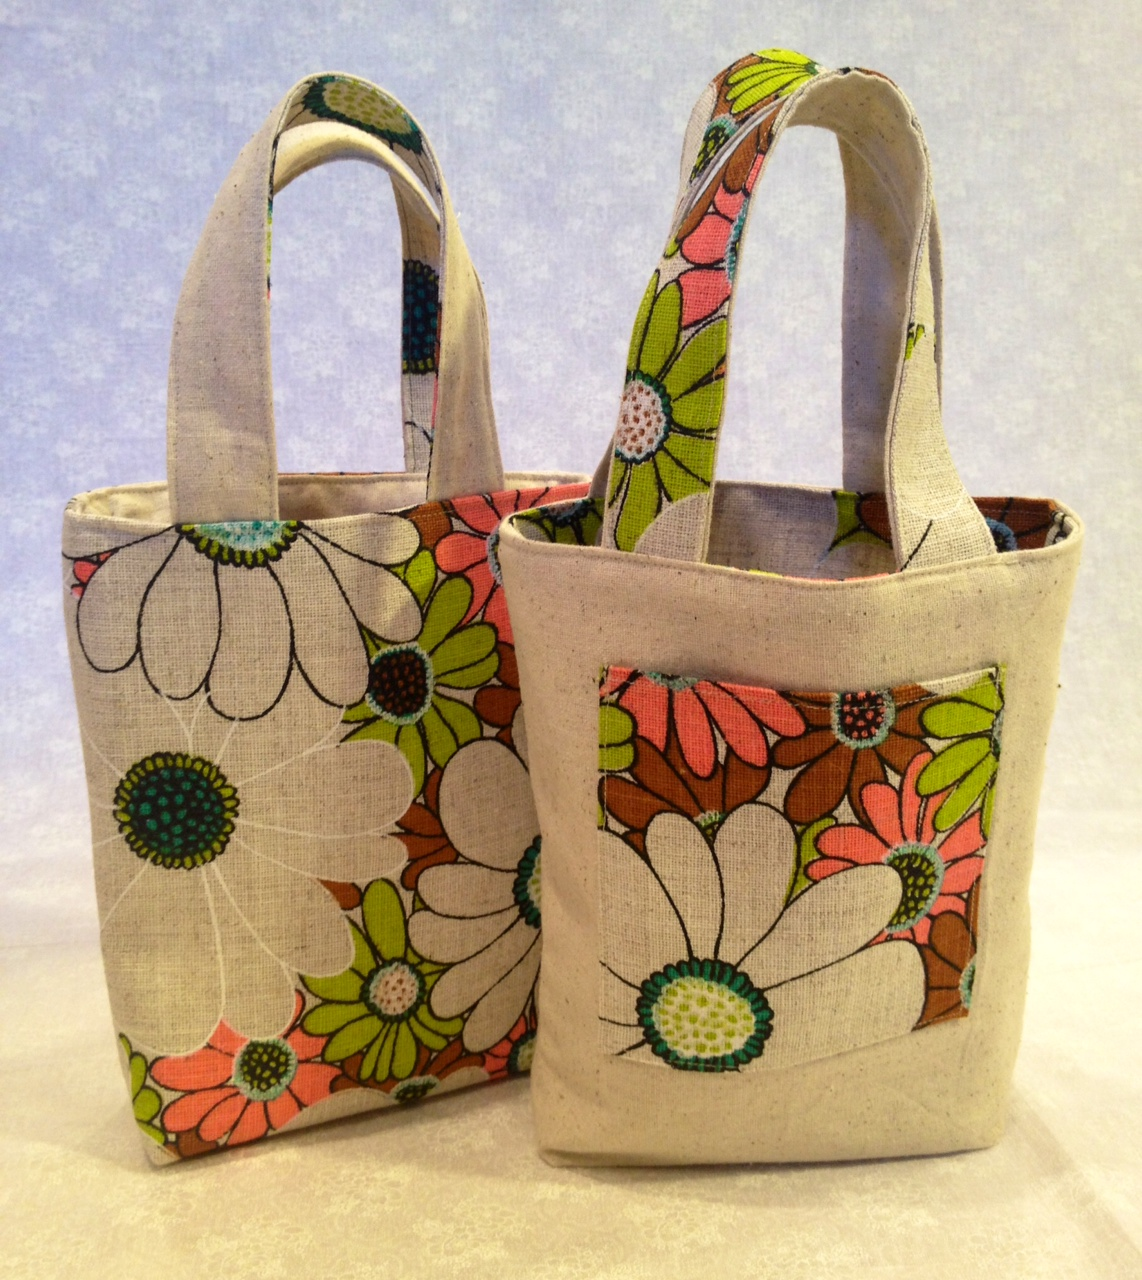 Reversible Tote Bags How To Make One Noelleodesigns